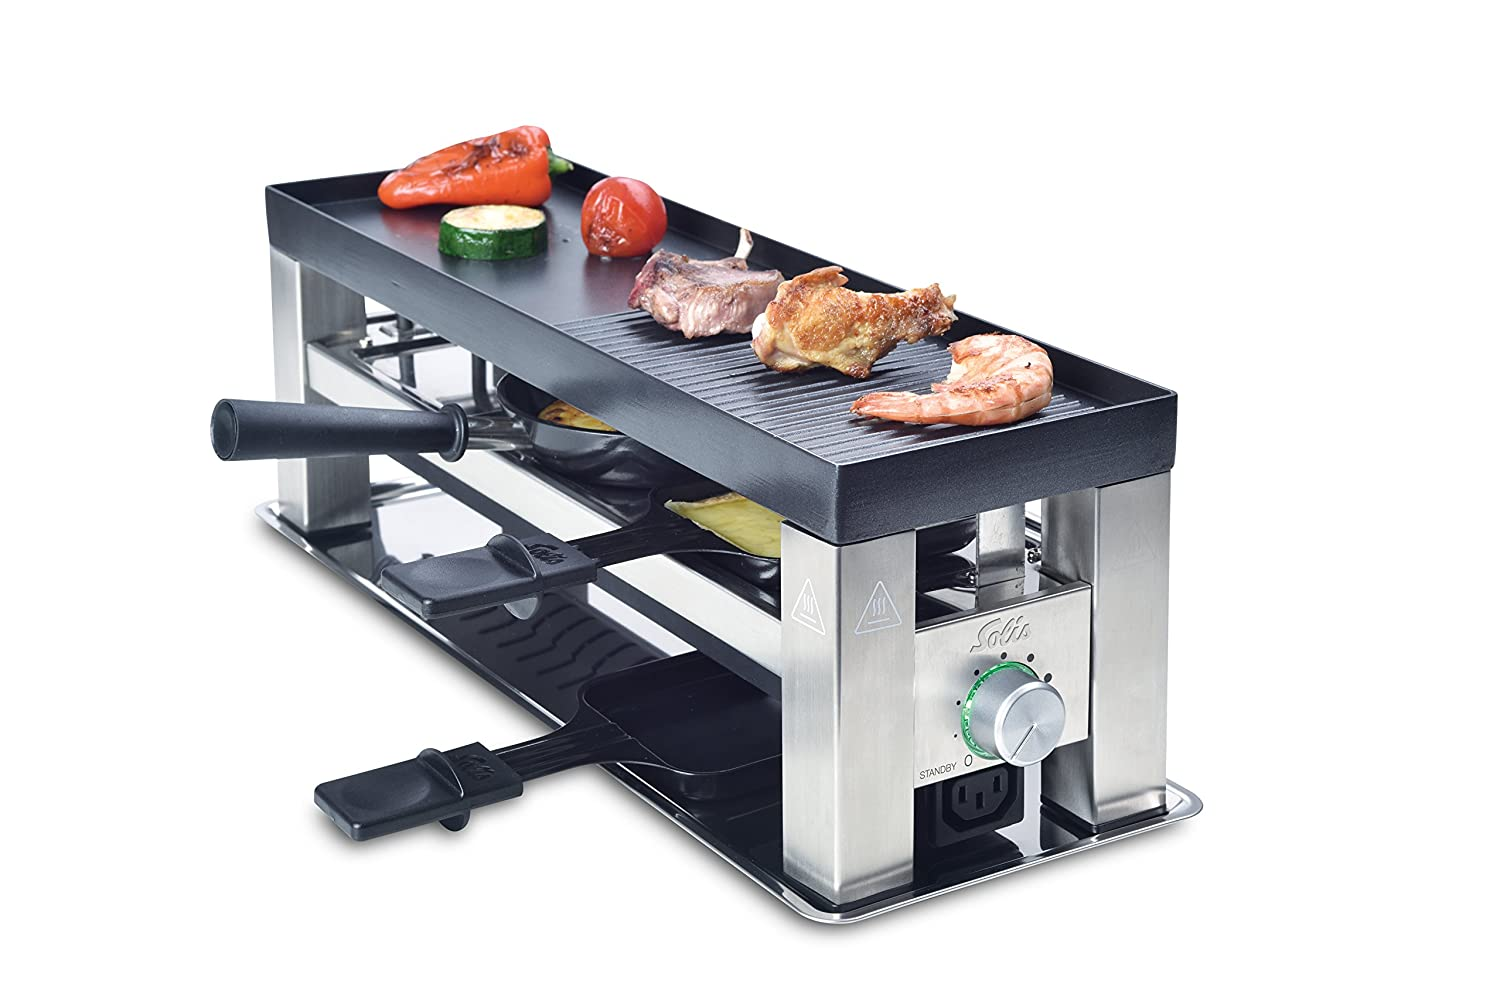 Wmf Elektrogrill Idealo : Amazon.de: solis grill 4 in 1 raclette tischgrill wok crêpes 3